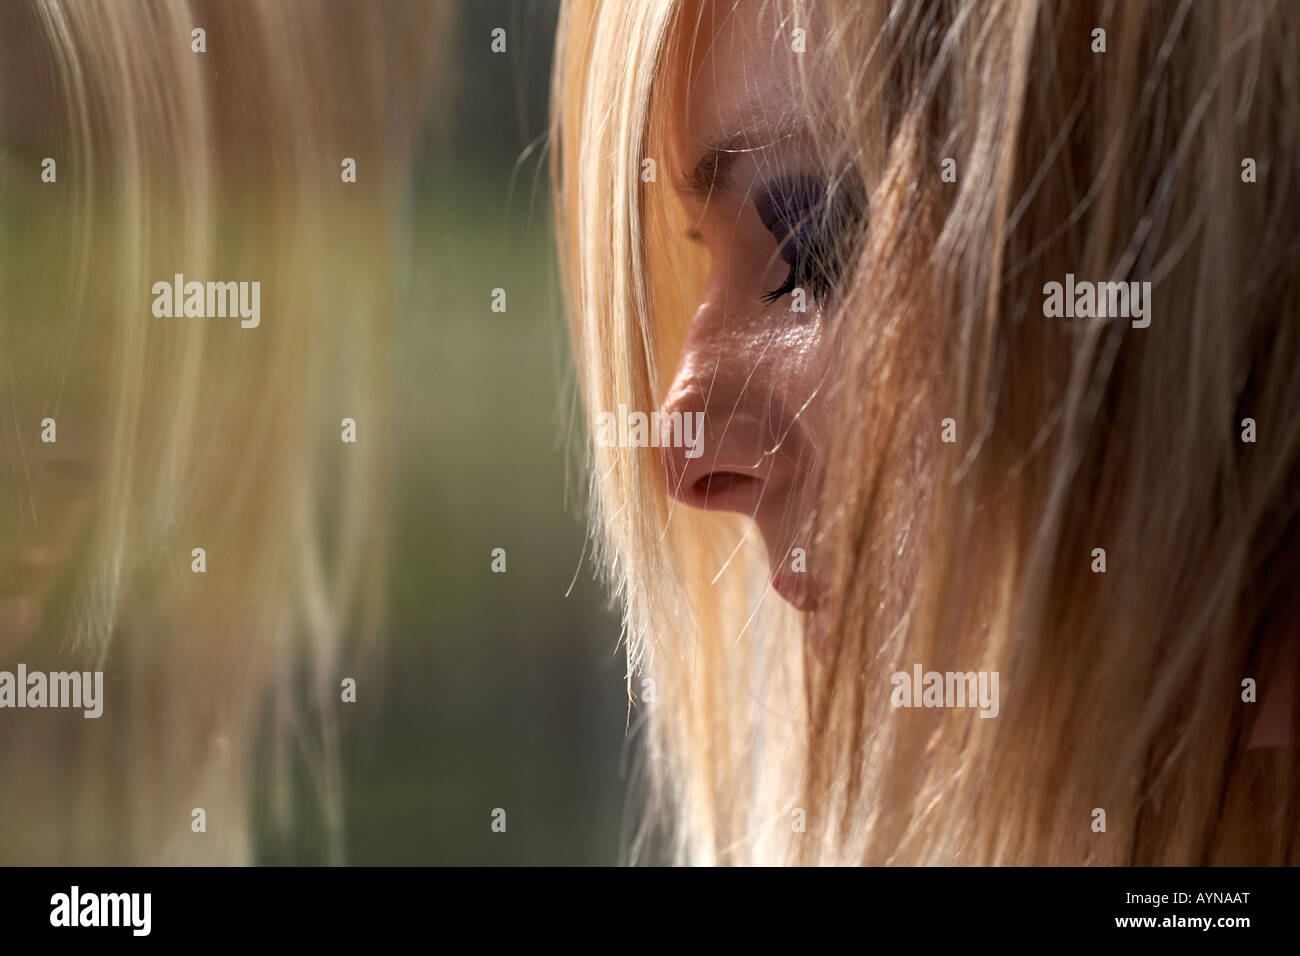 young blonde haired teenage woman crying in front of dirty window with reflection illustrating student mental health - Stock Image